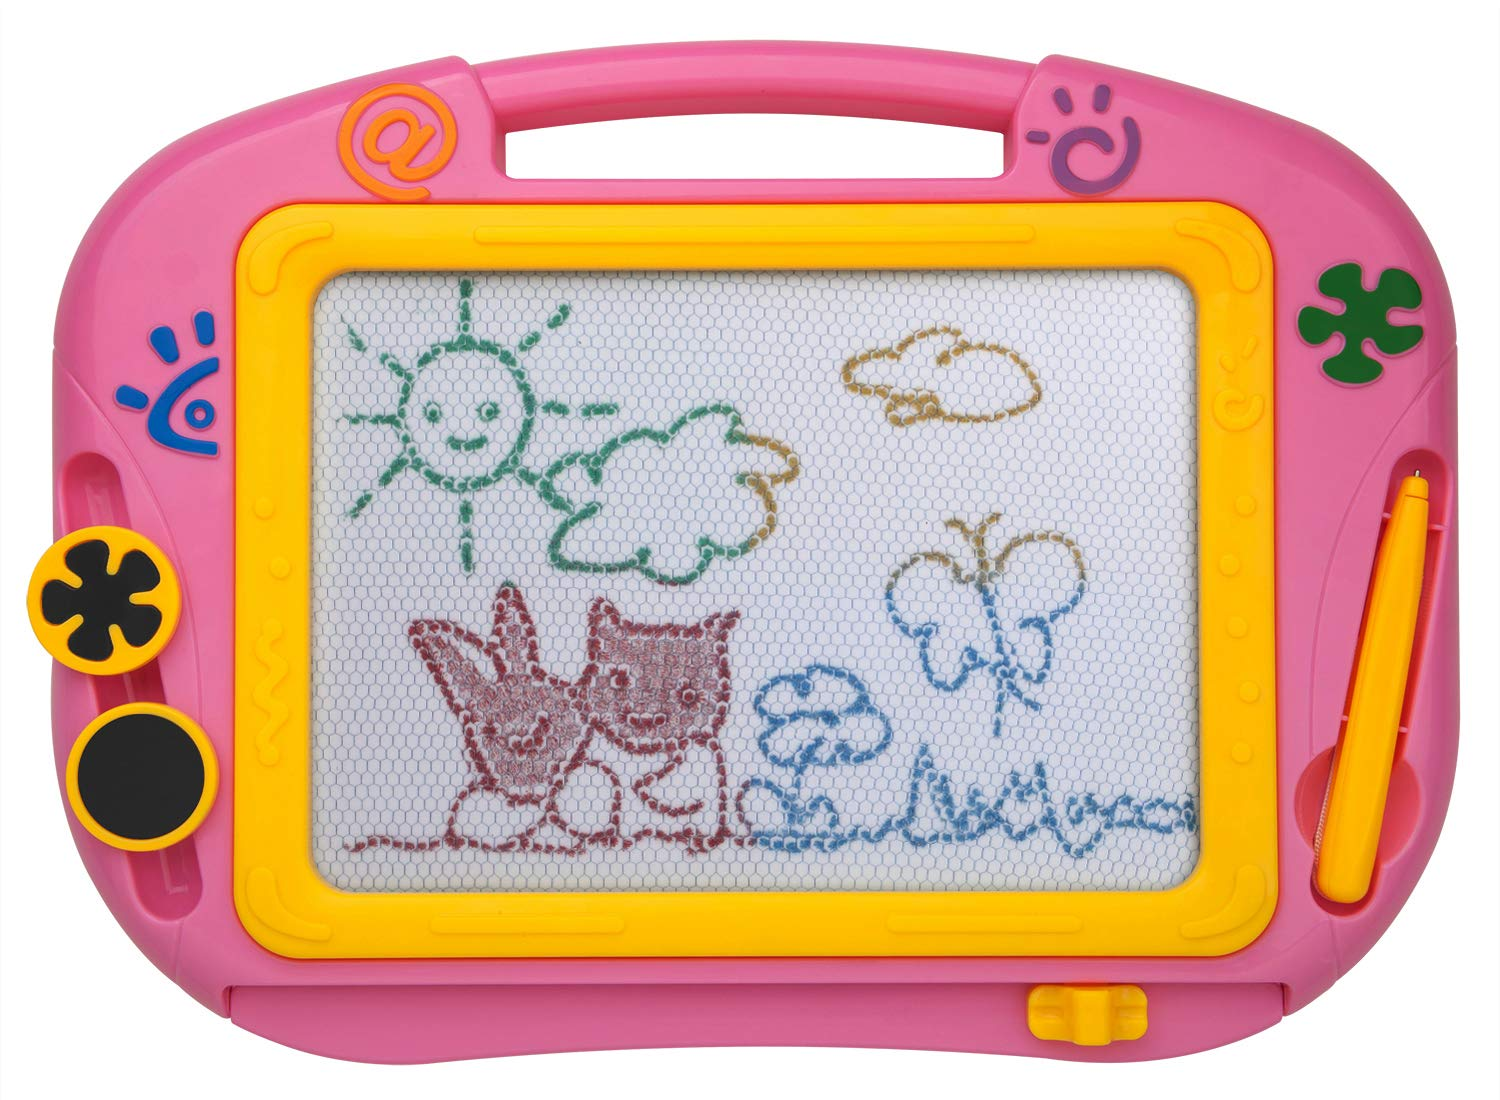 ikidsislands IKS88P [Travel Size] Color Magnetic Drawing Board for Kids, Doodle Board for Toddlers, Sketch Pad Toy for Little Girls (Pink)